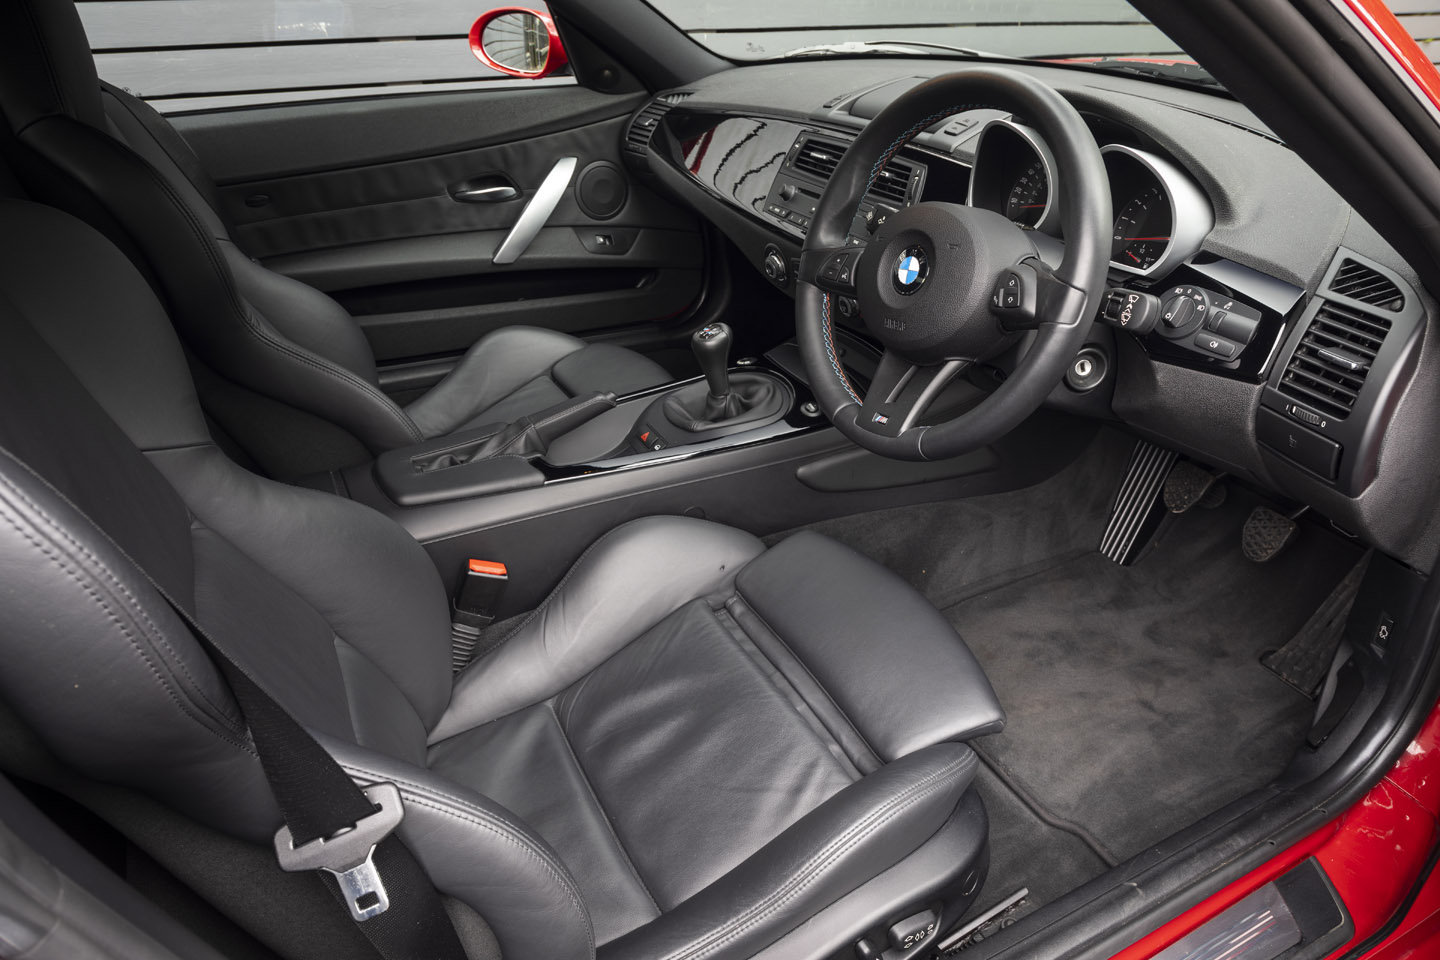 2008 BMW Z4M Coupe ONLY 3100 MILES For Sale (picture 4 of 6)